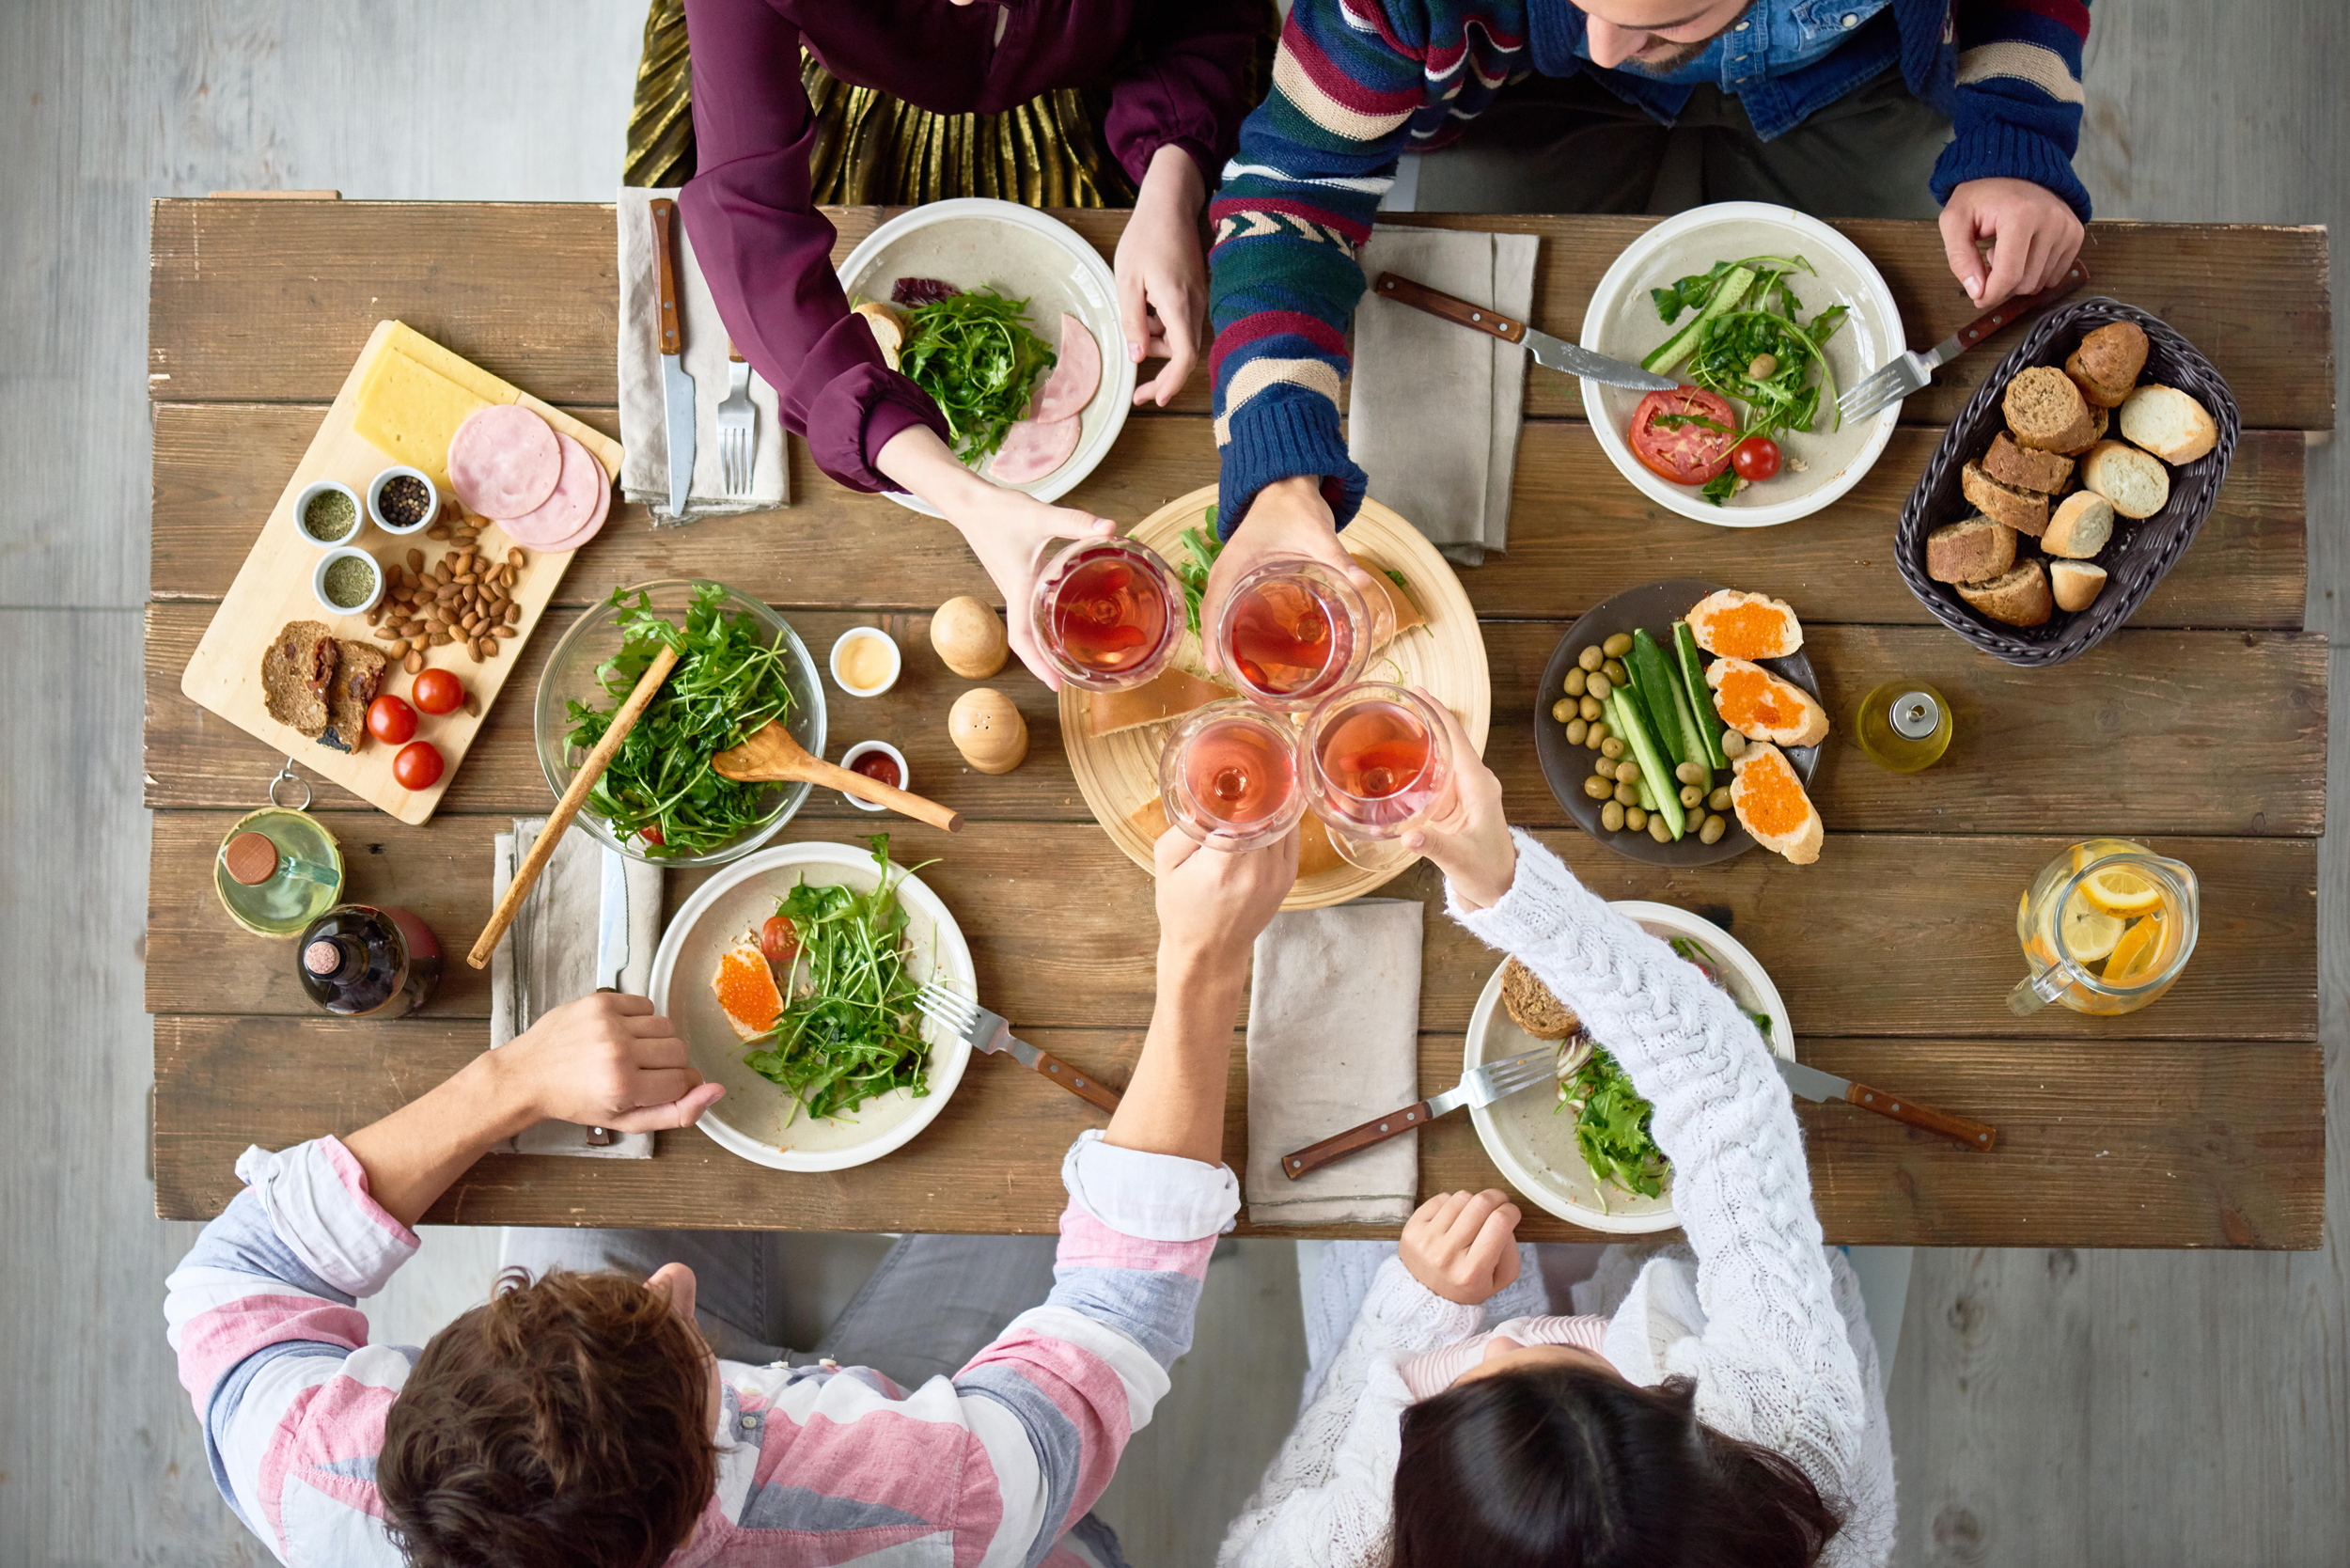 Image: Friends Gathering at Dinner Table